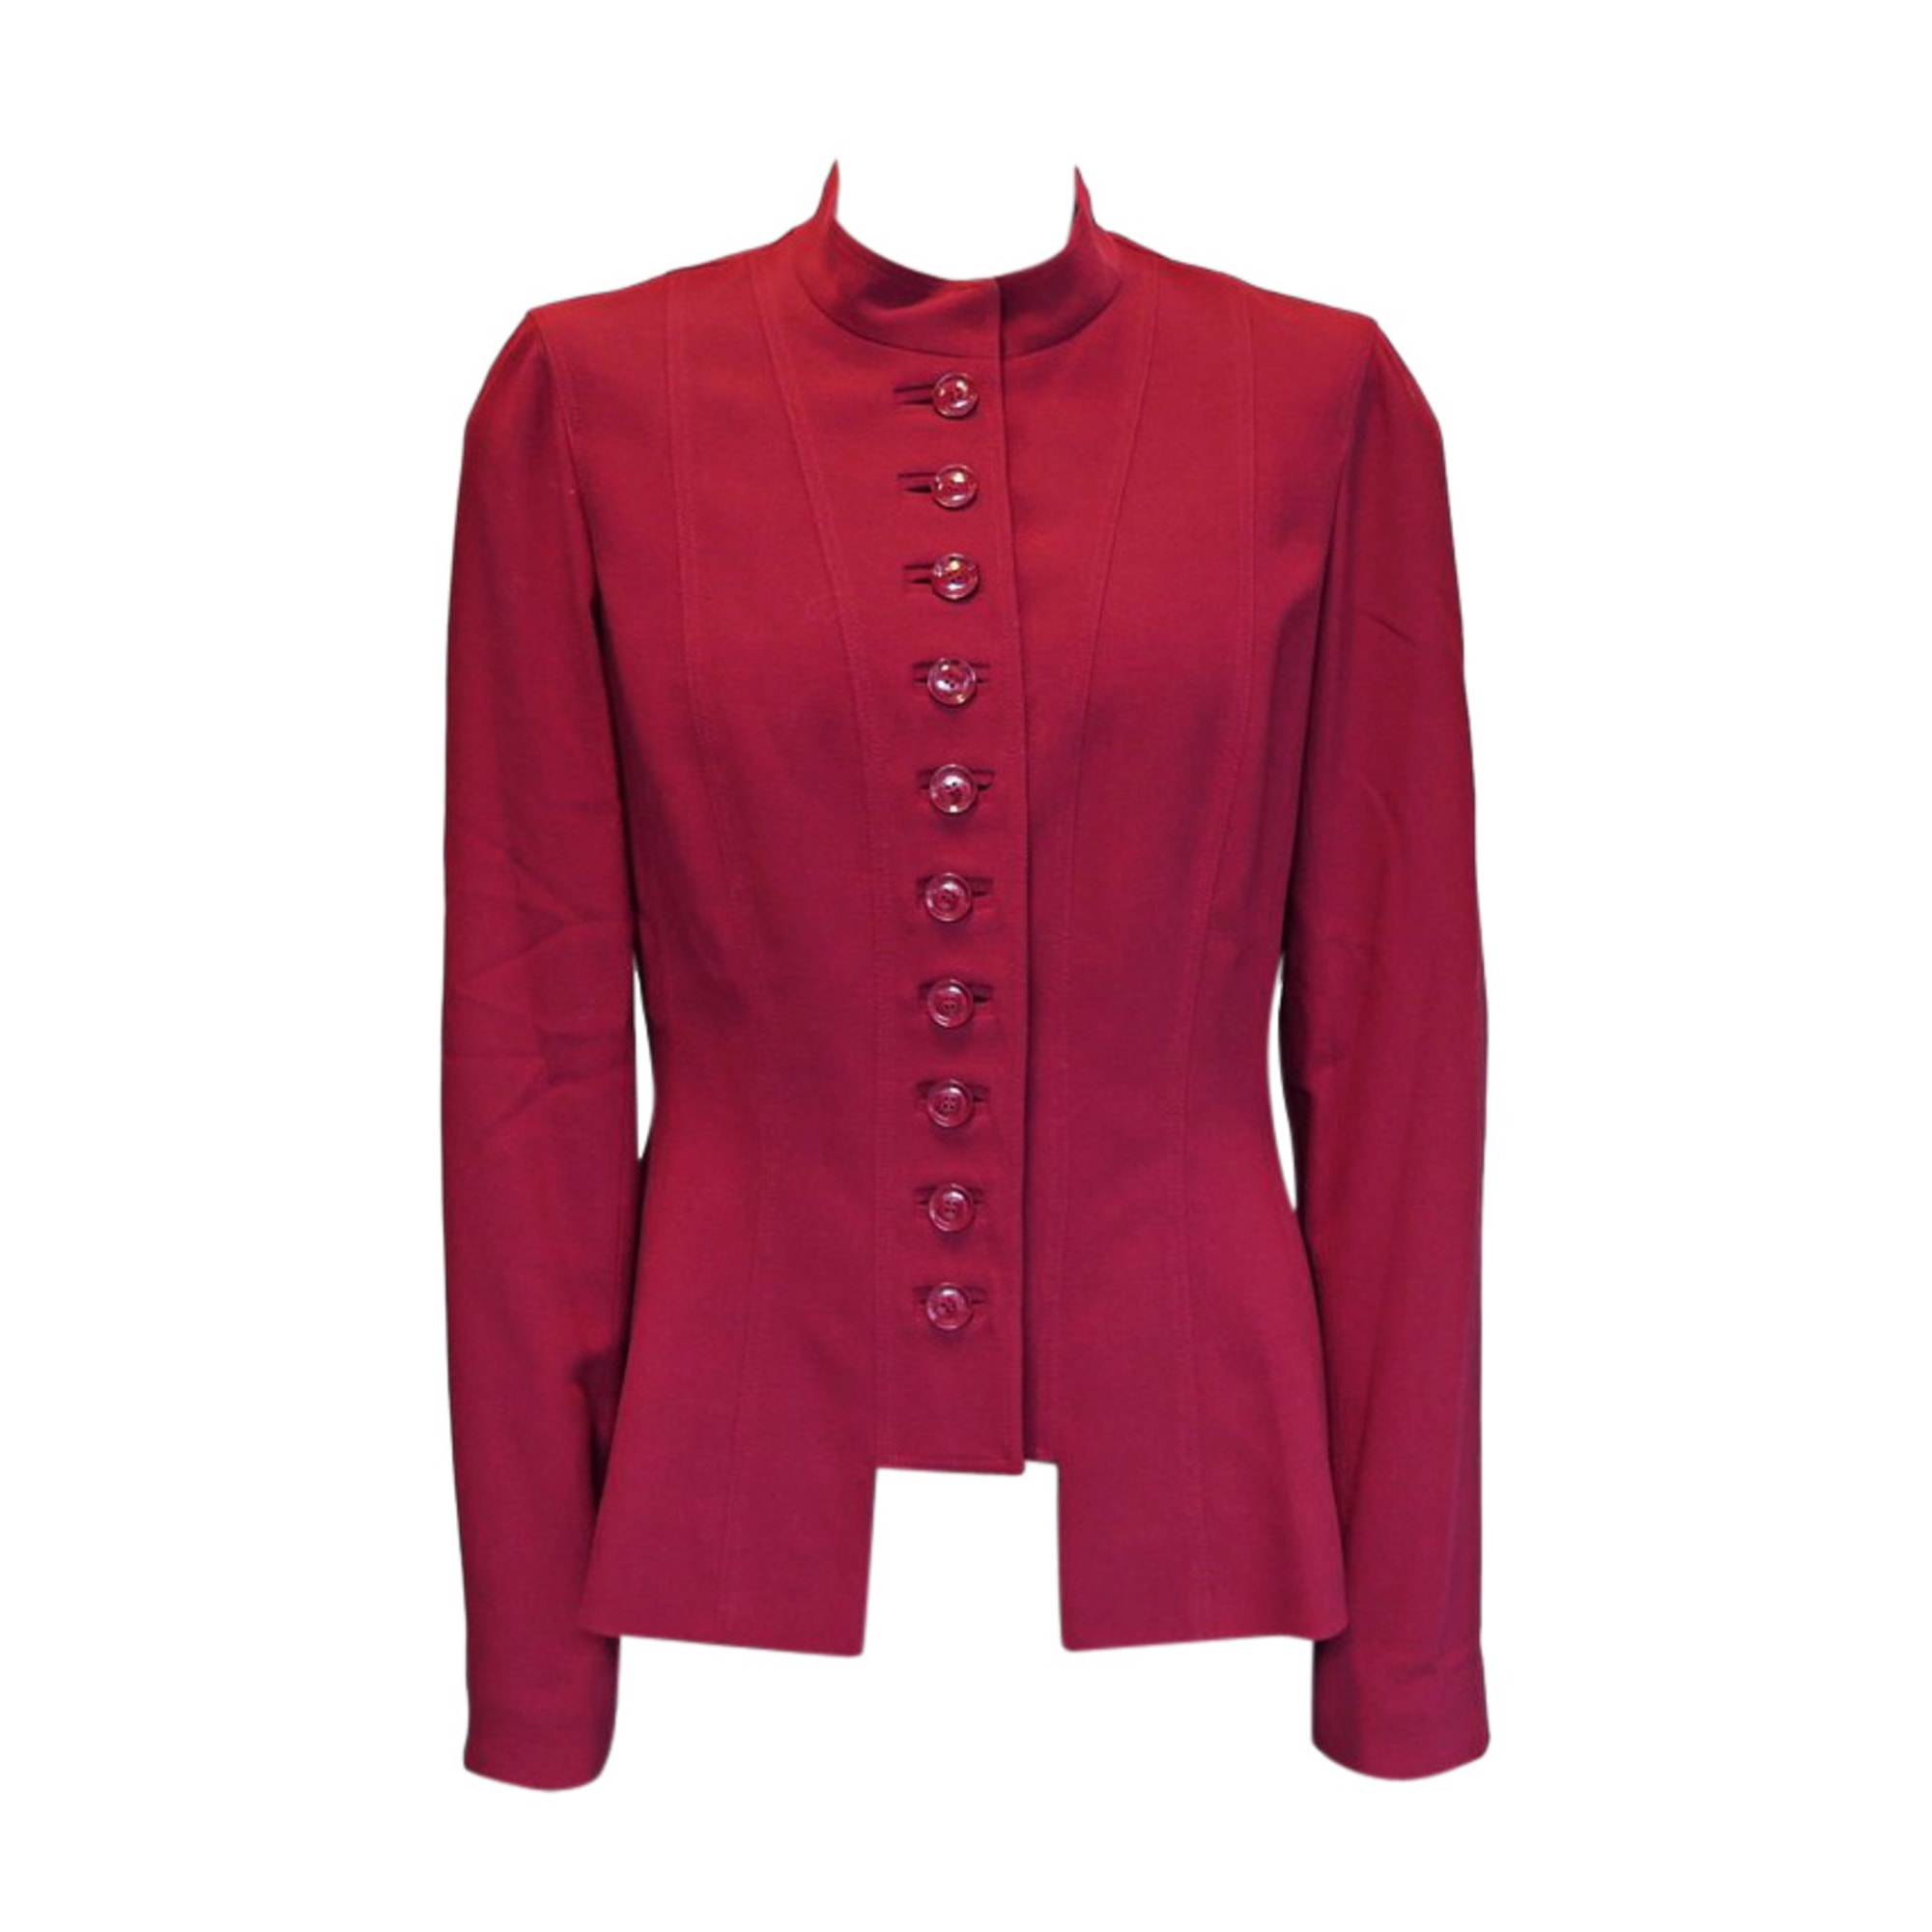 Veste DIOR Rouge, bordeaux